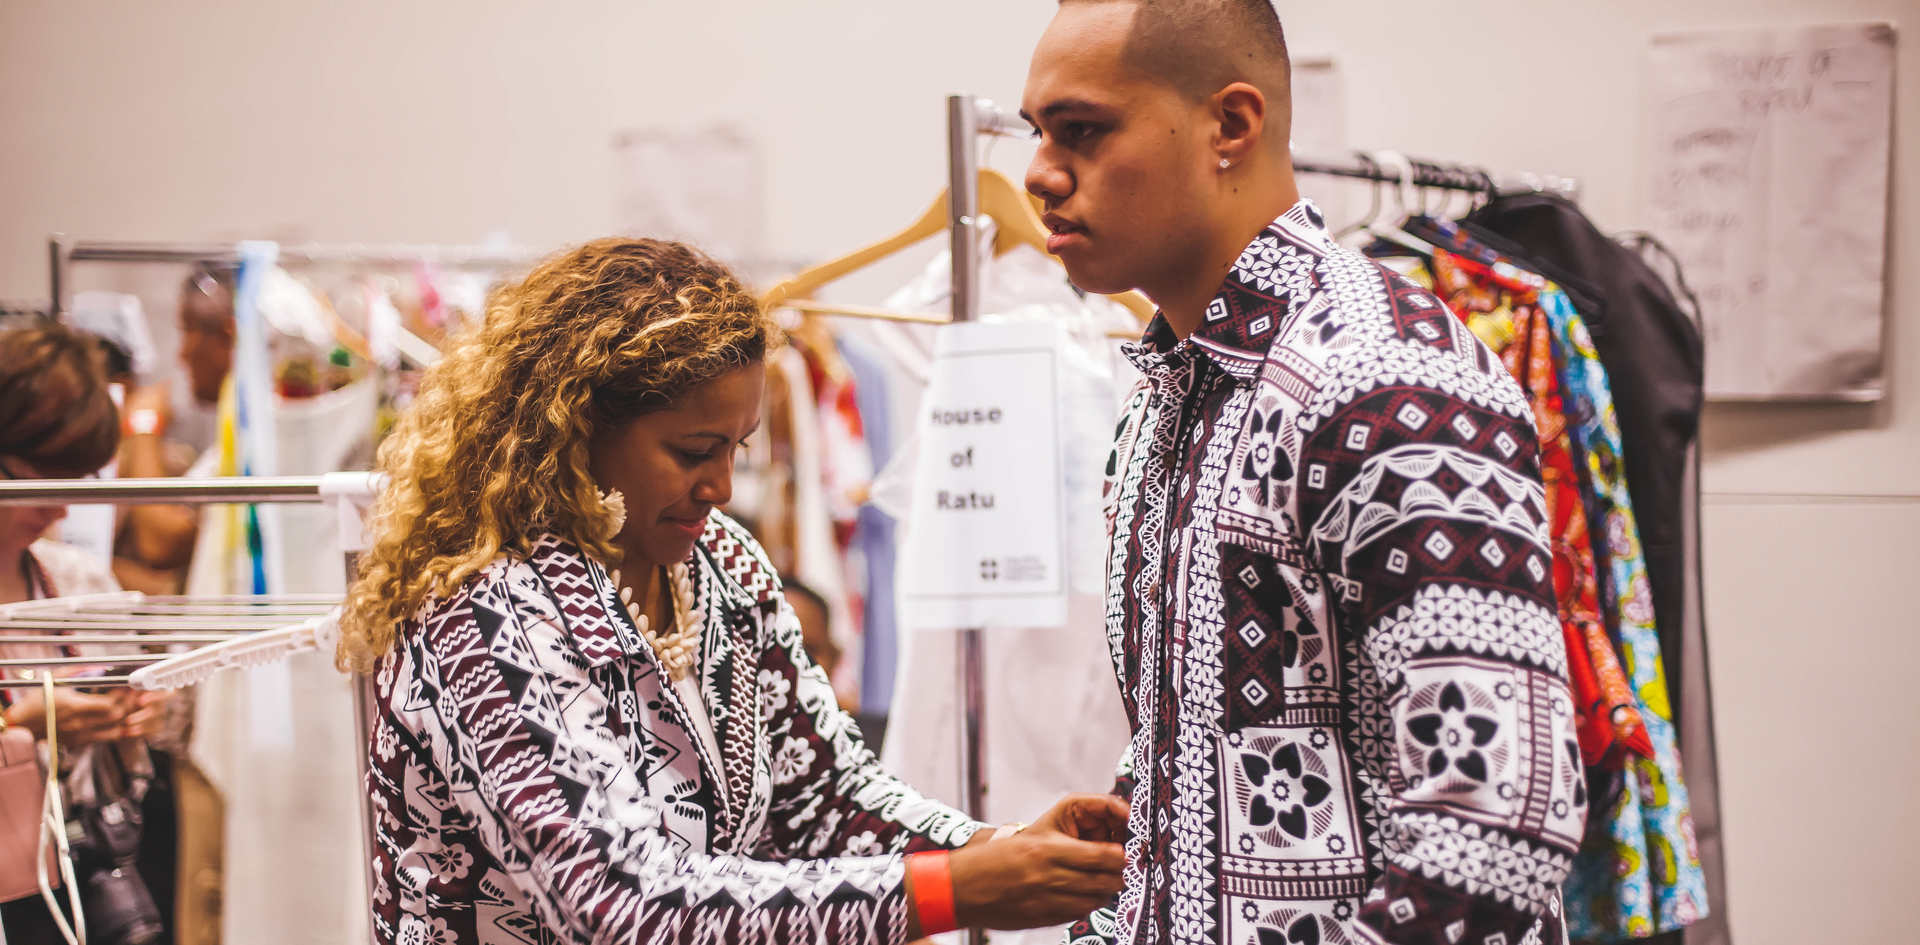 House of Ratu Men getting ready backstage with Designer, Miriam Ratu-Fairhead